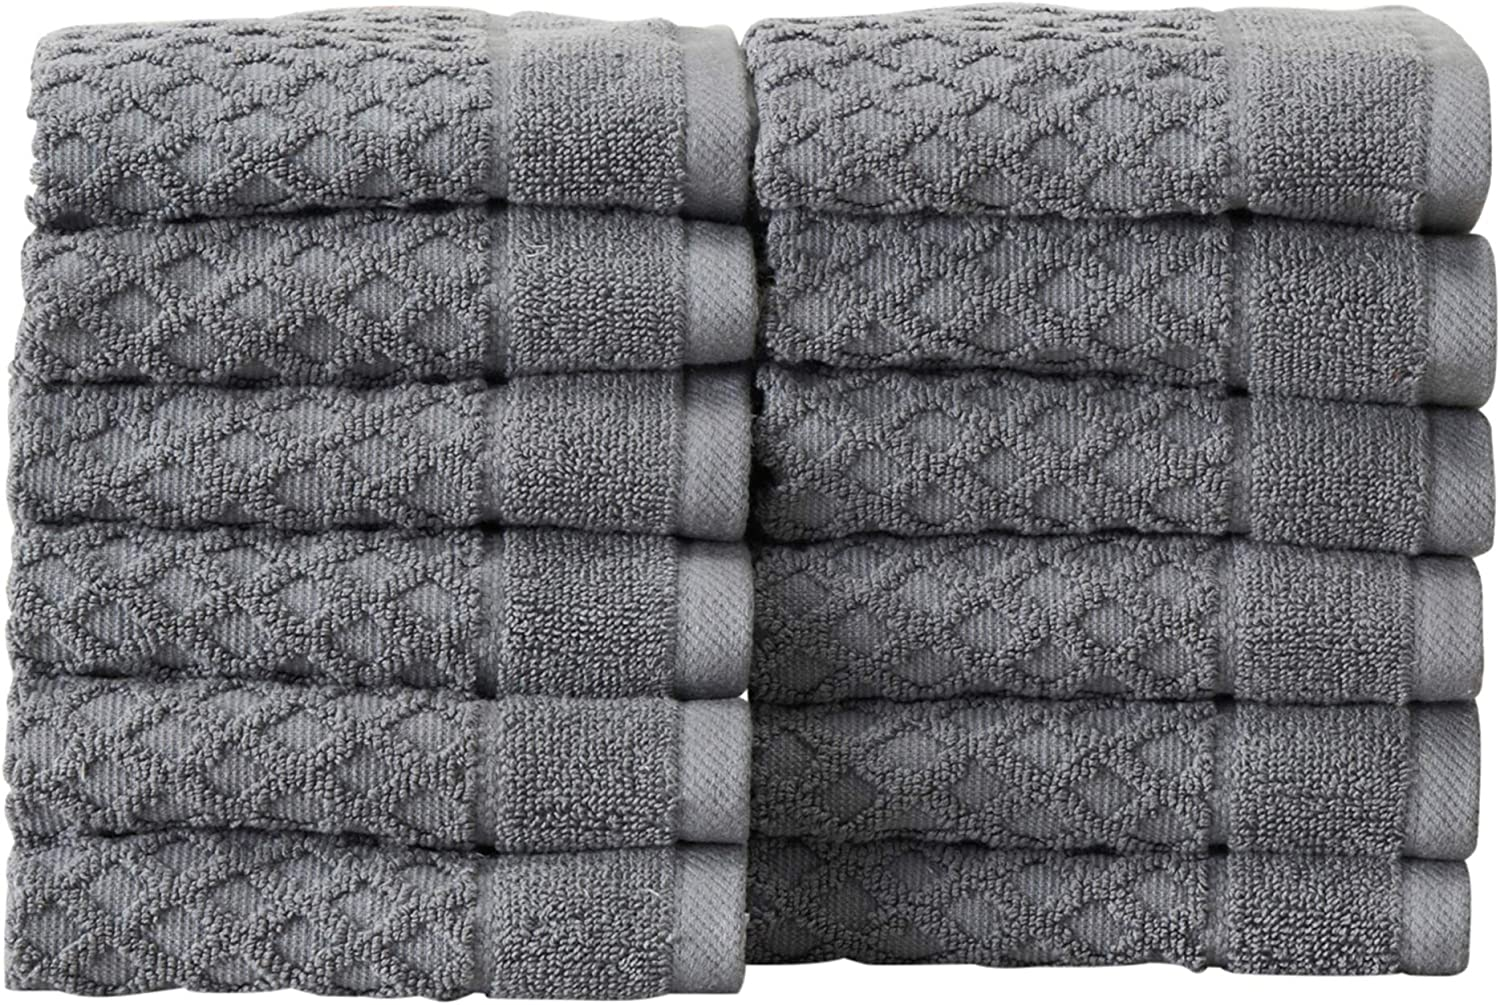 12-Pack Washcloth Set. 100% Cotton Absorbent Quick-Dry Textured Washcloth Towels. Wash Cloths for Bathrooms. Grayson Collection. (Wash 12pk, Dark Grey)